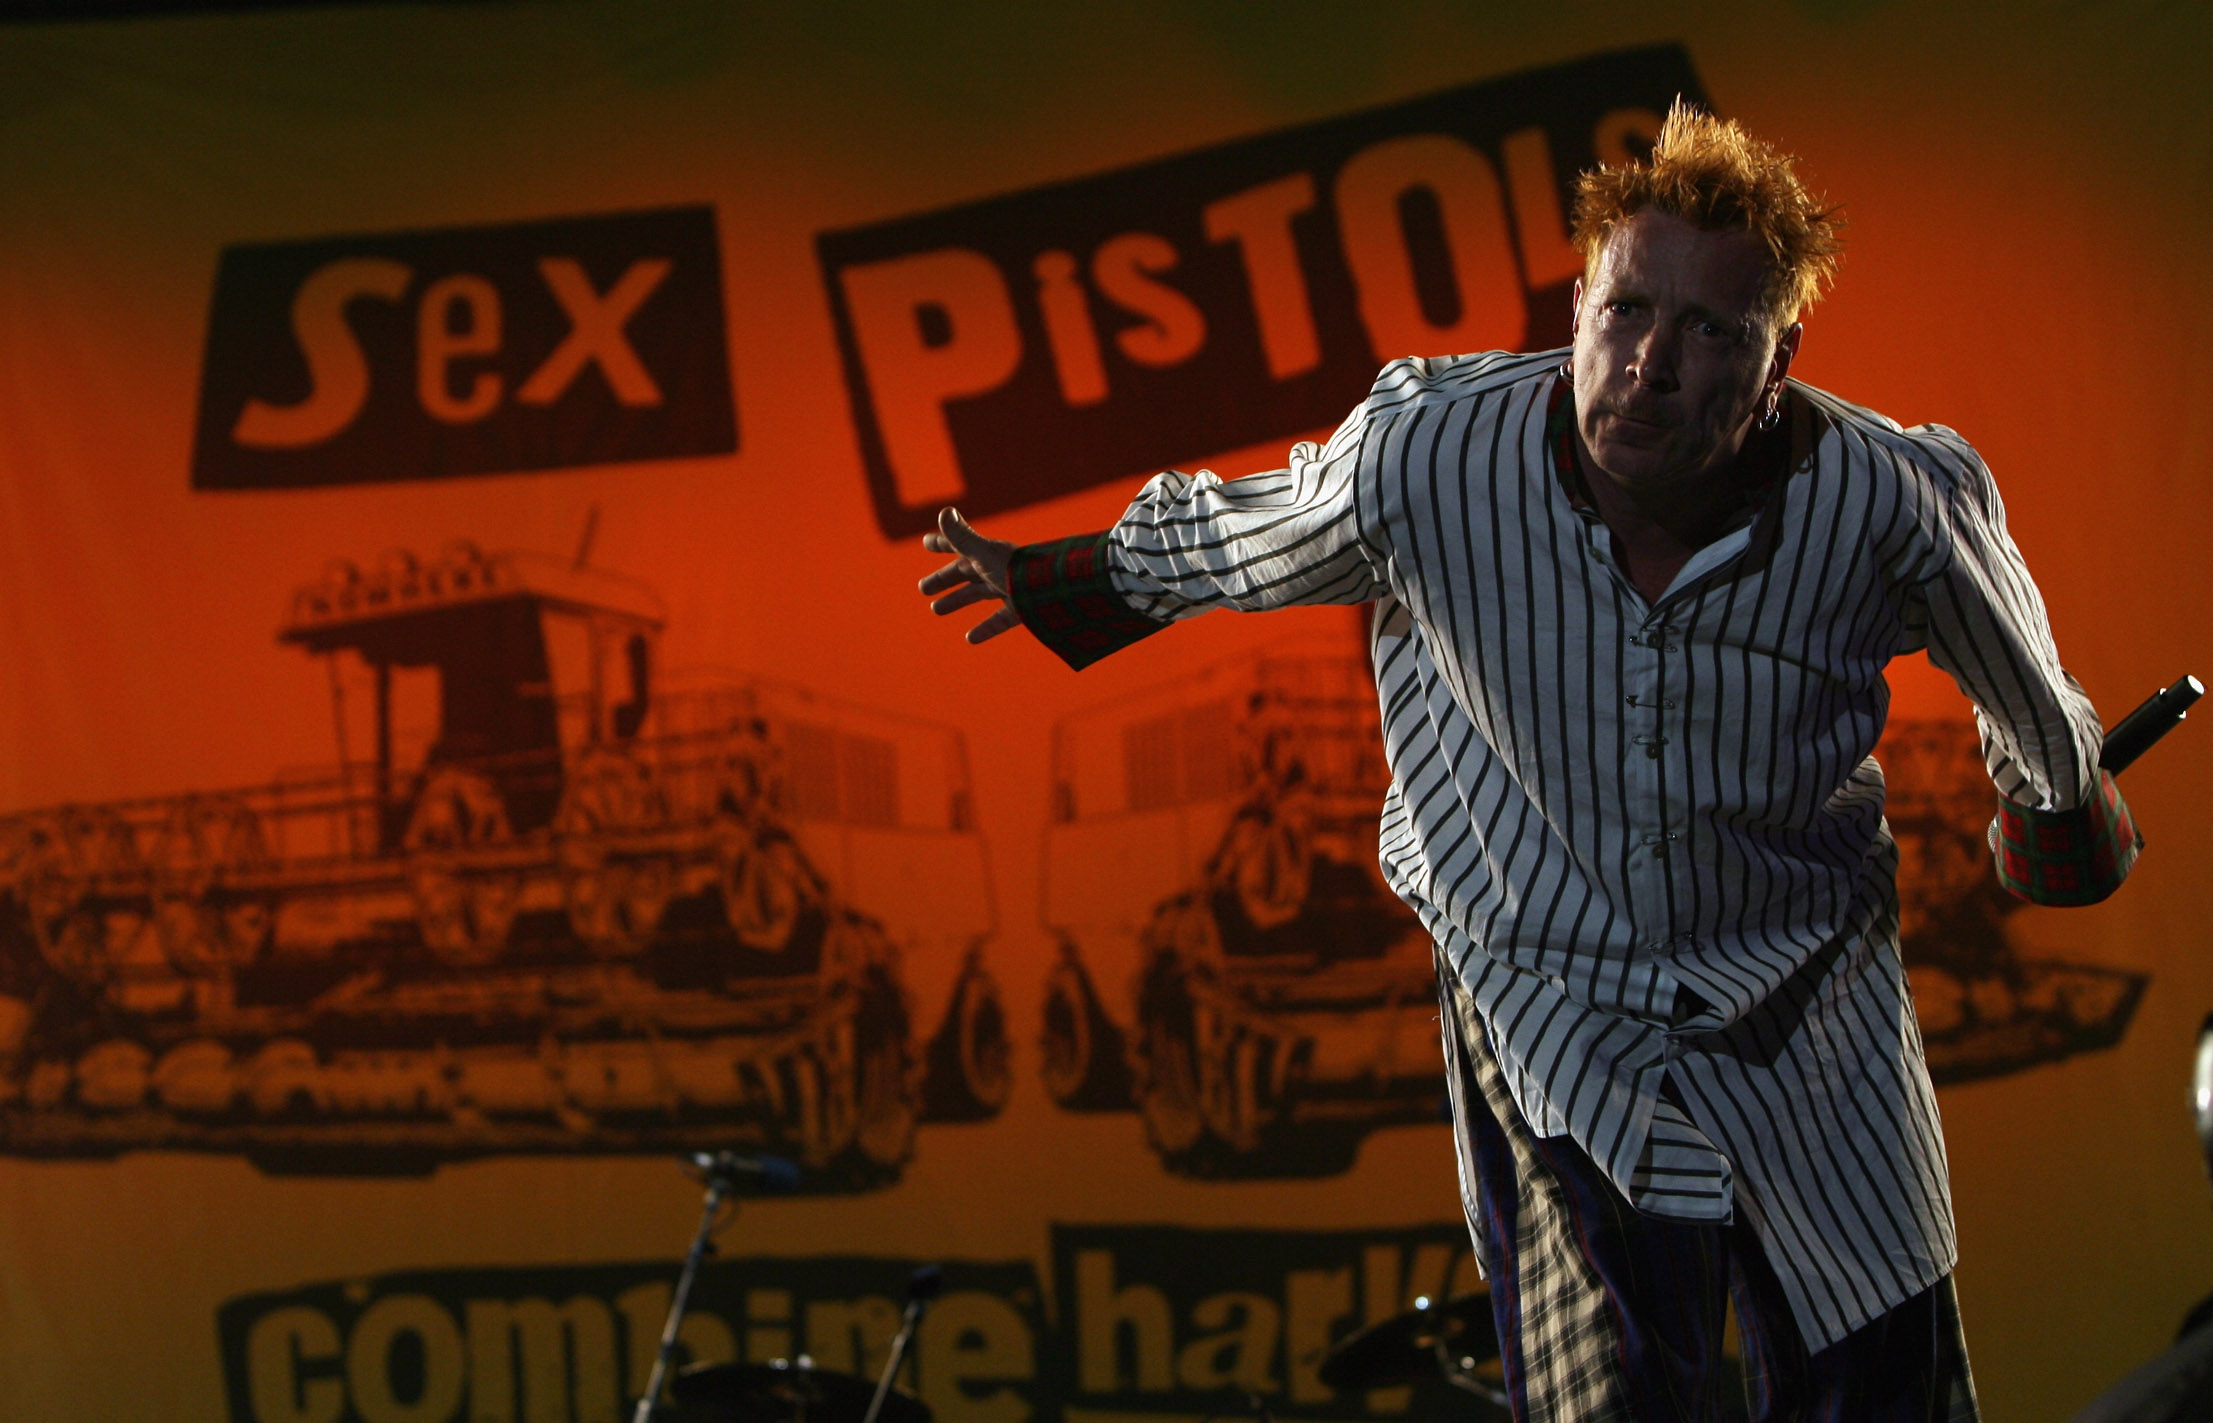 John Lydon of the Sex Pistols, seen performing at an Isle of Wight festival, were an integral part of punk rock. (Getty Images)